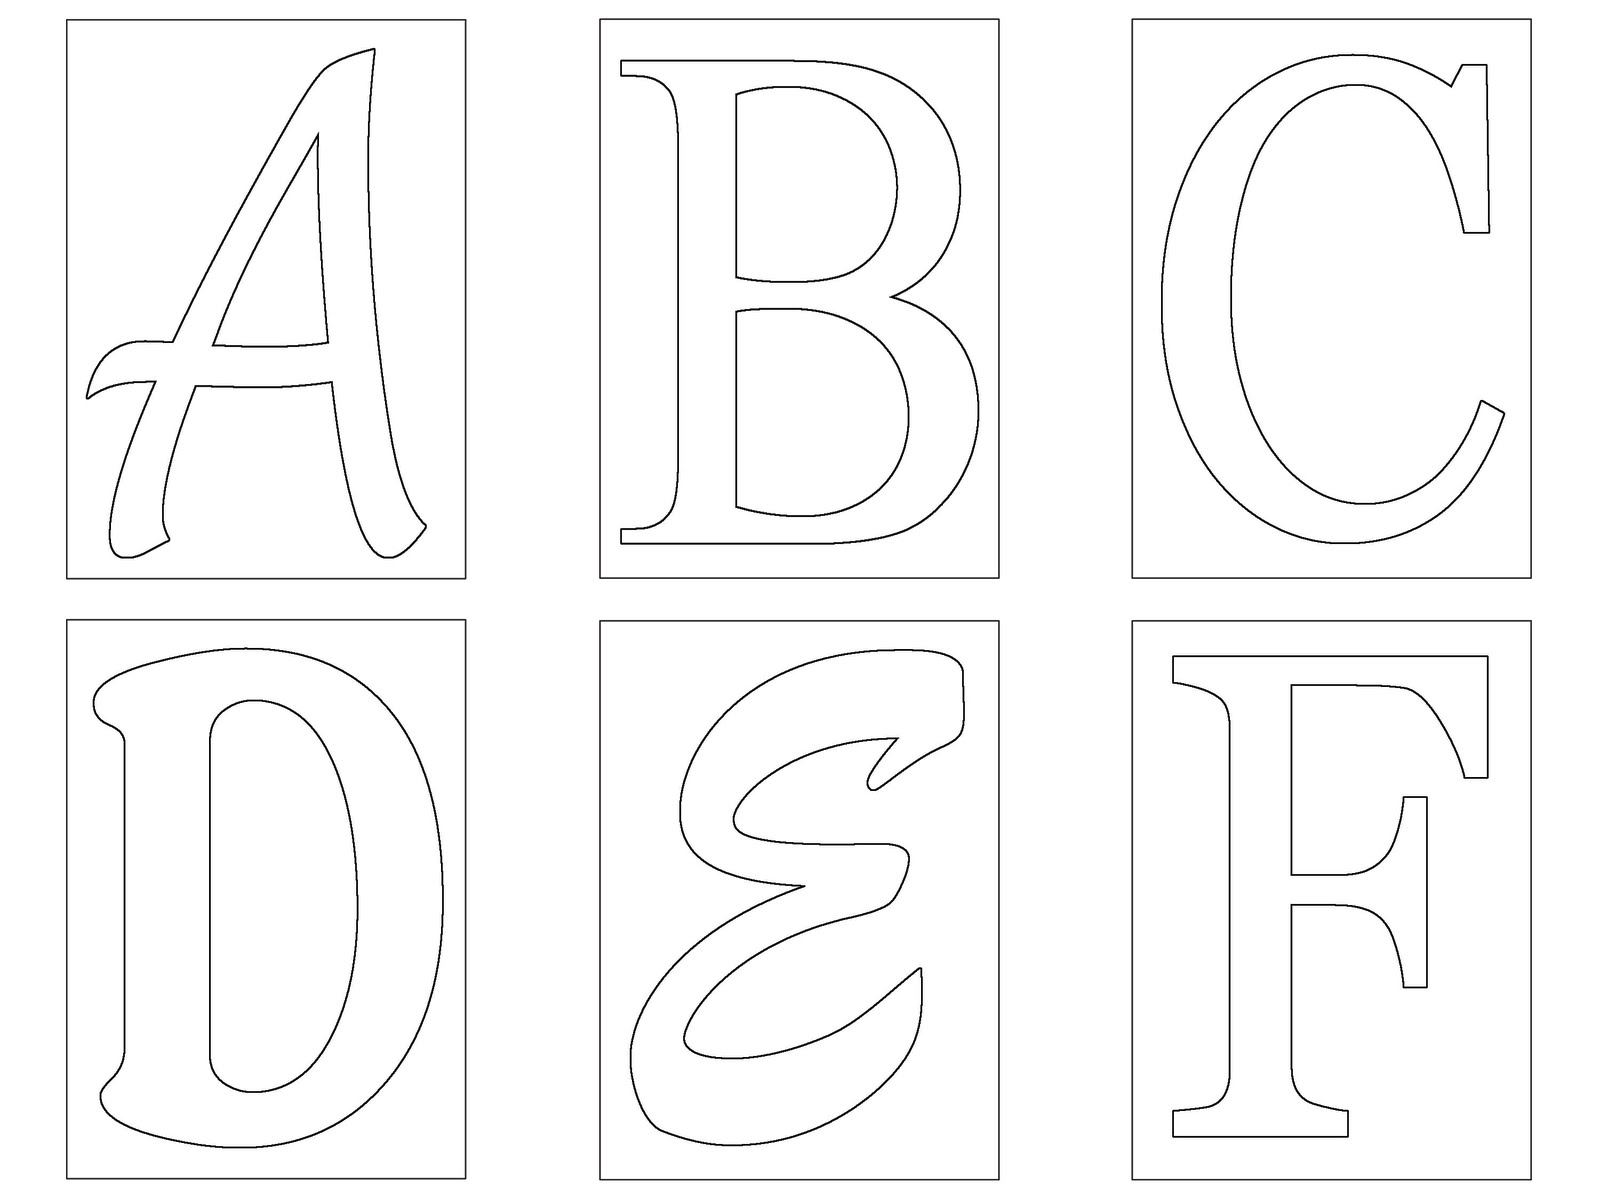 This is a picture of Playful Printable Letters to Cut Out